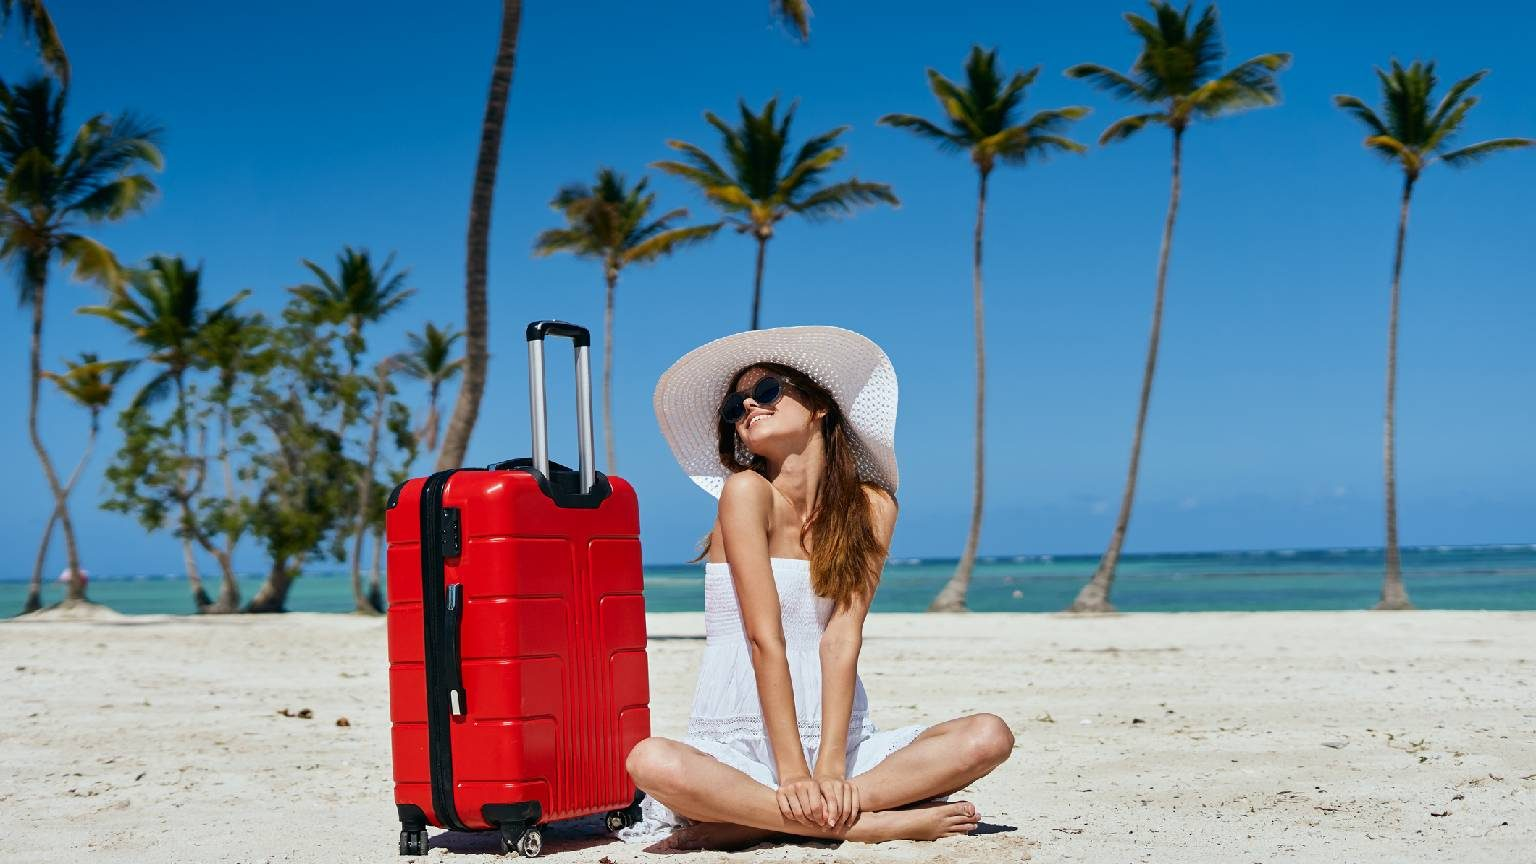 Woman smiling in white dress next to red suitcase on a sunny beach with palm trees in the background.